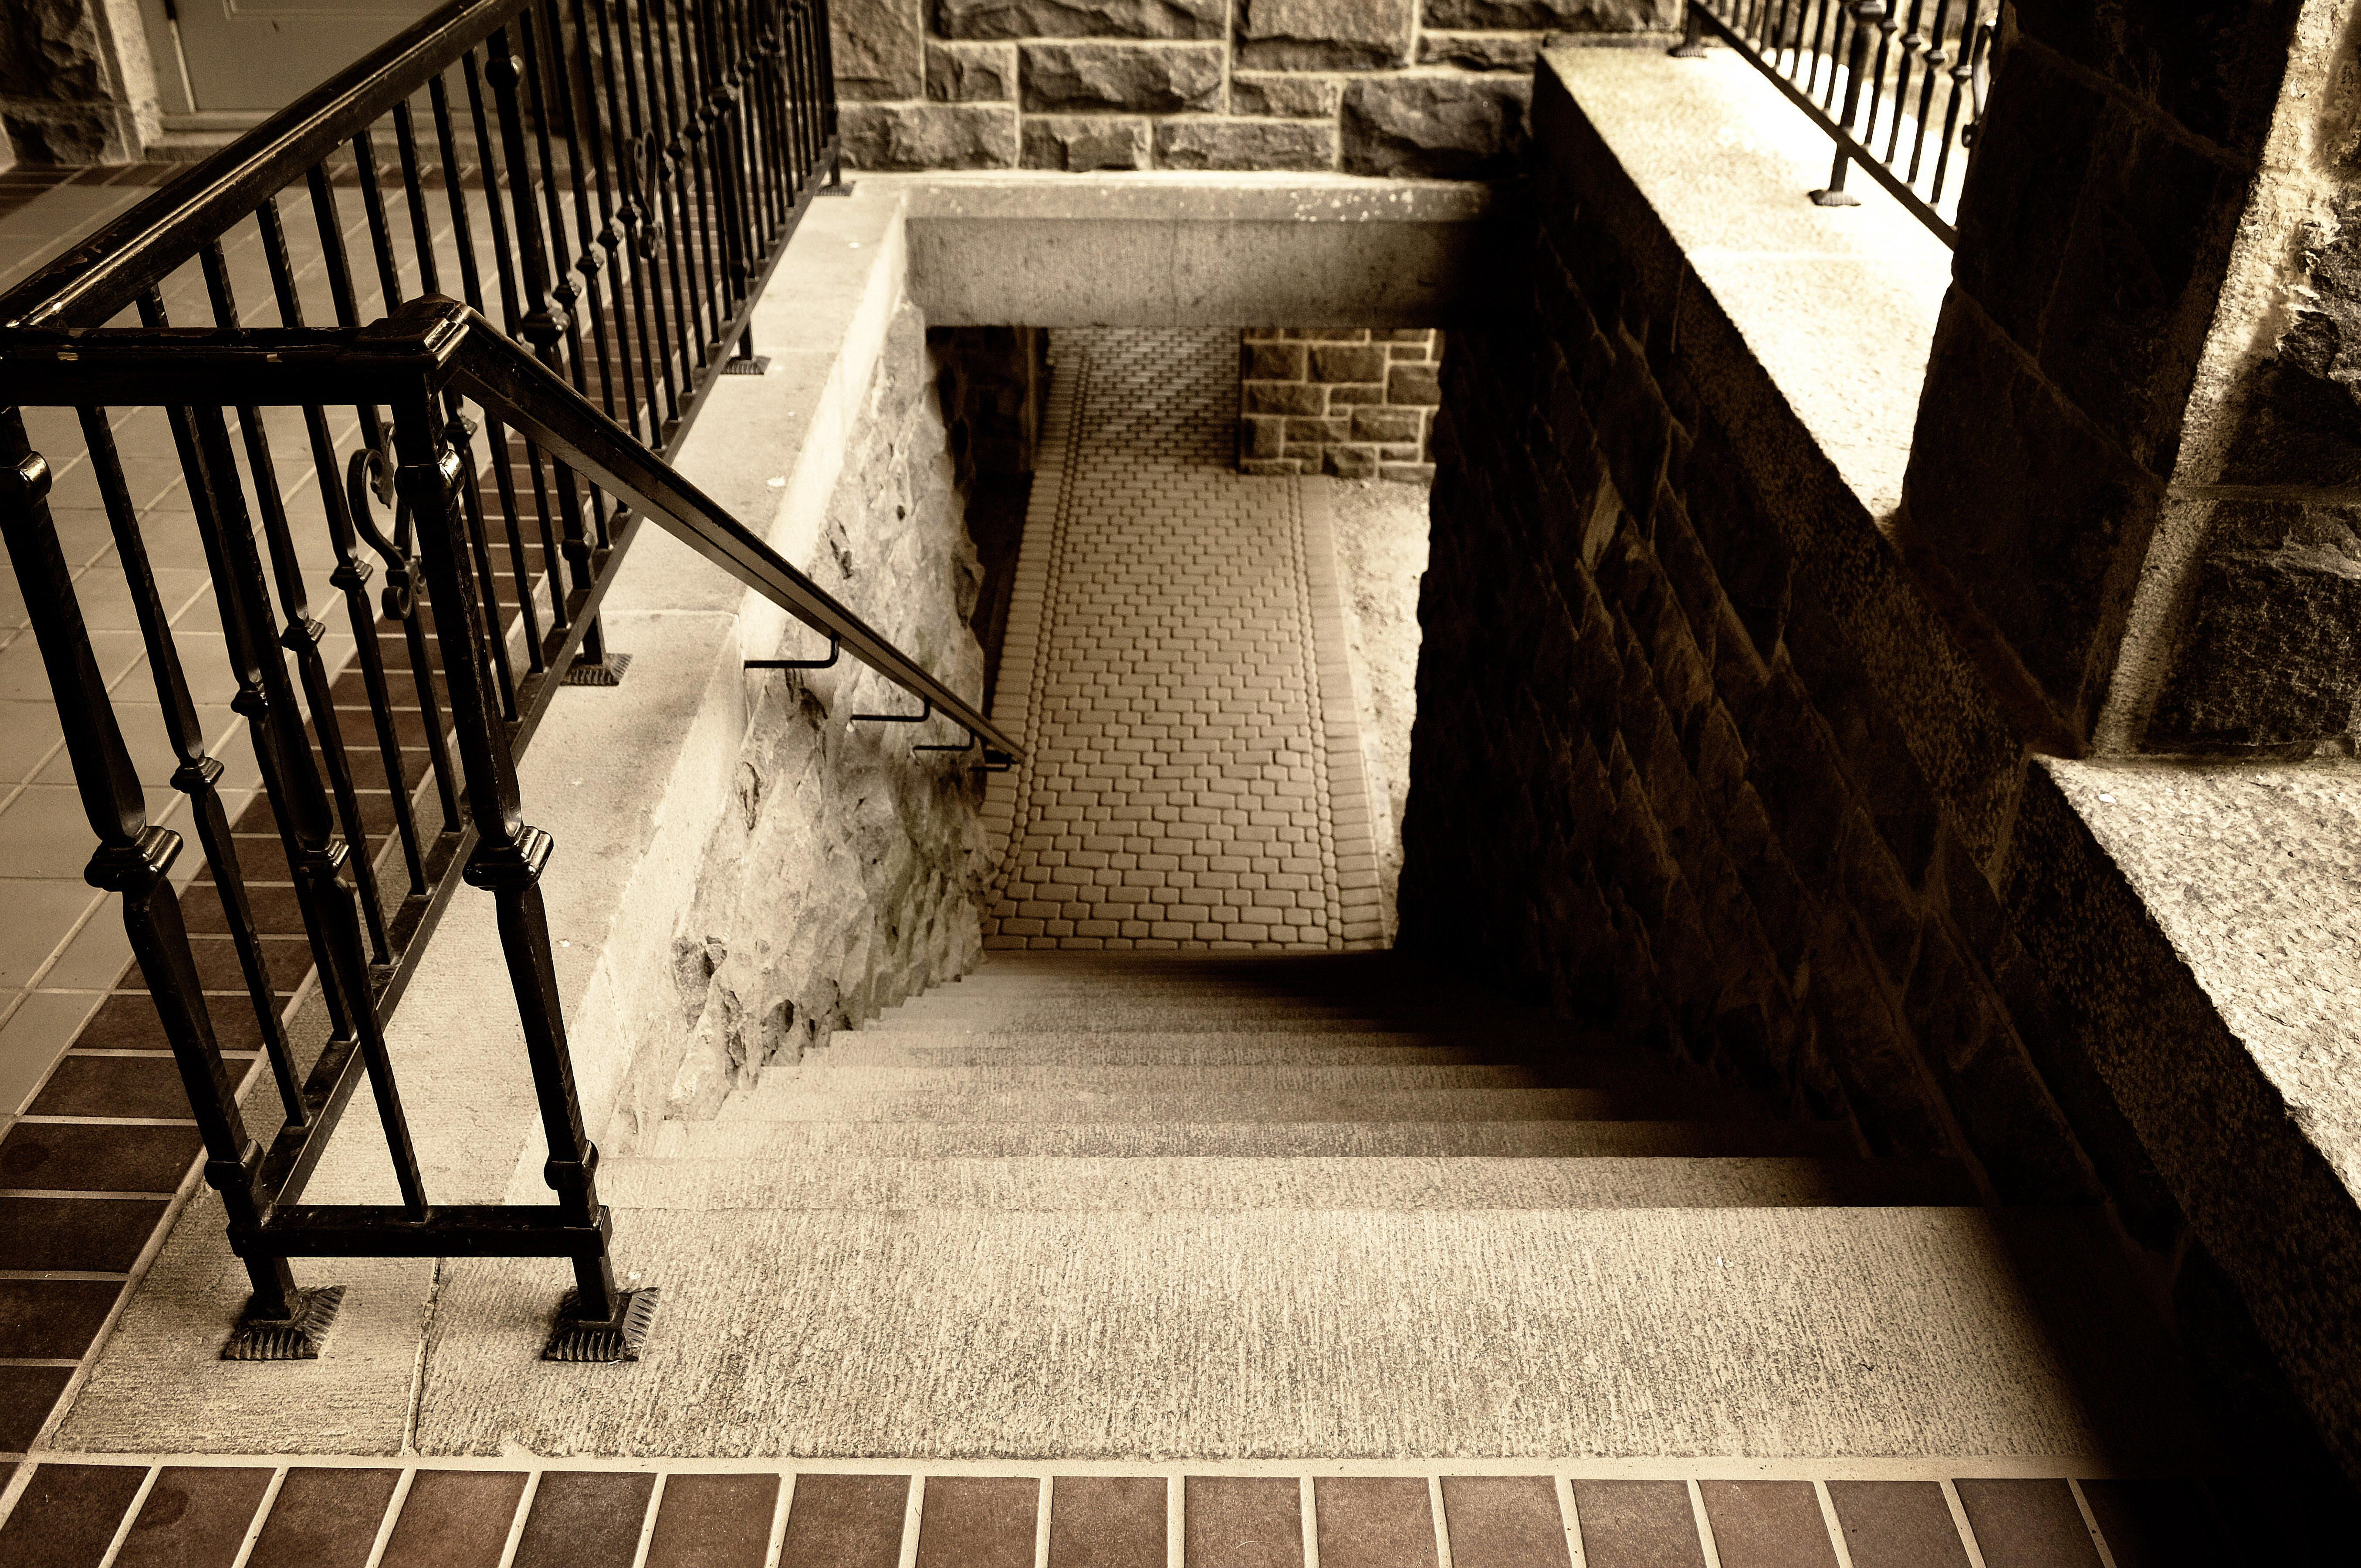 Stairs at Boldt Castle in upstate N.Y. lead to long, echoey corridors